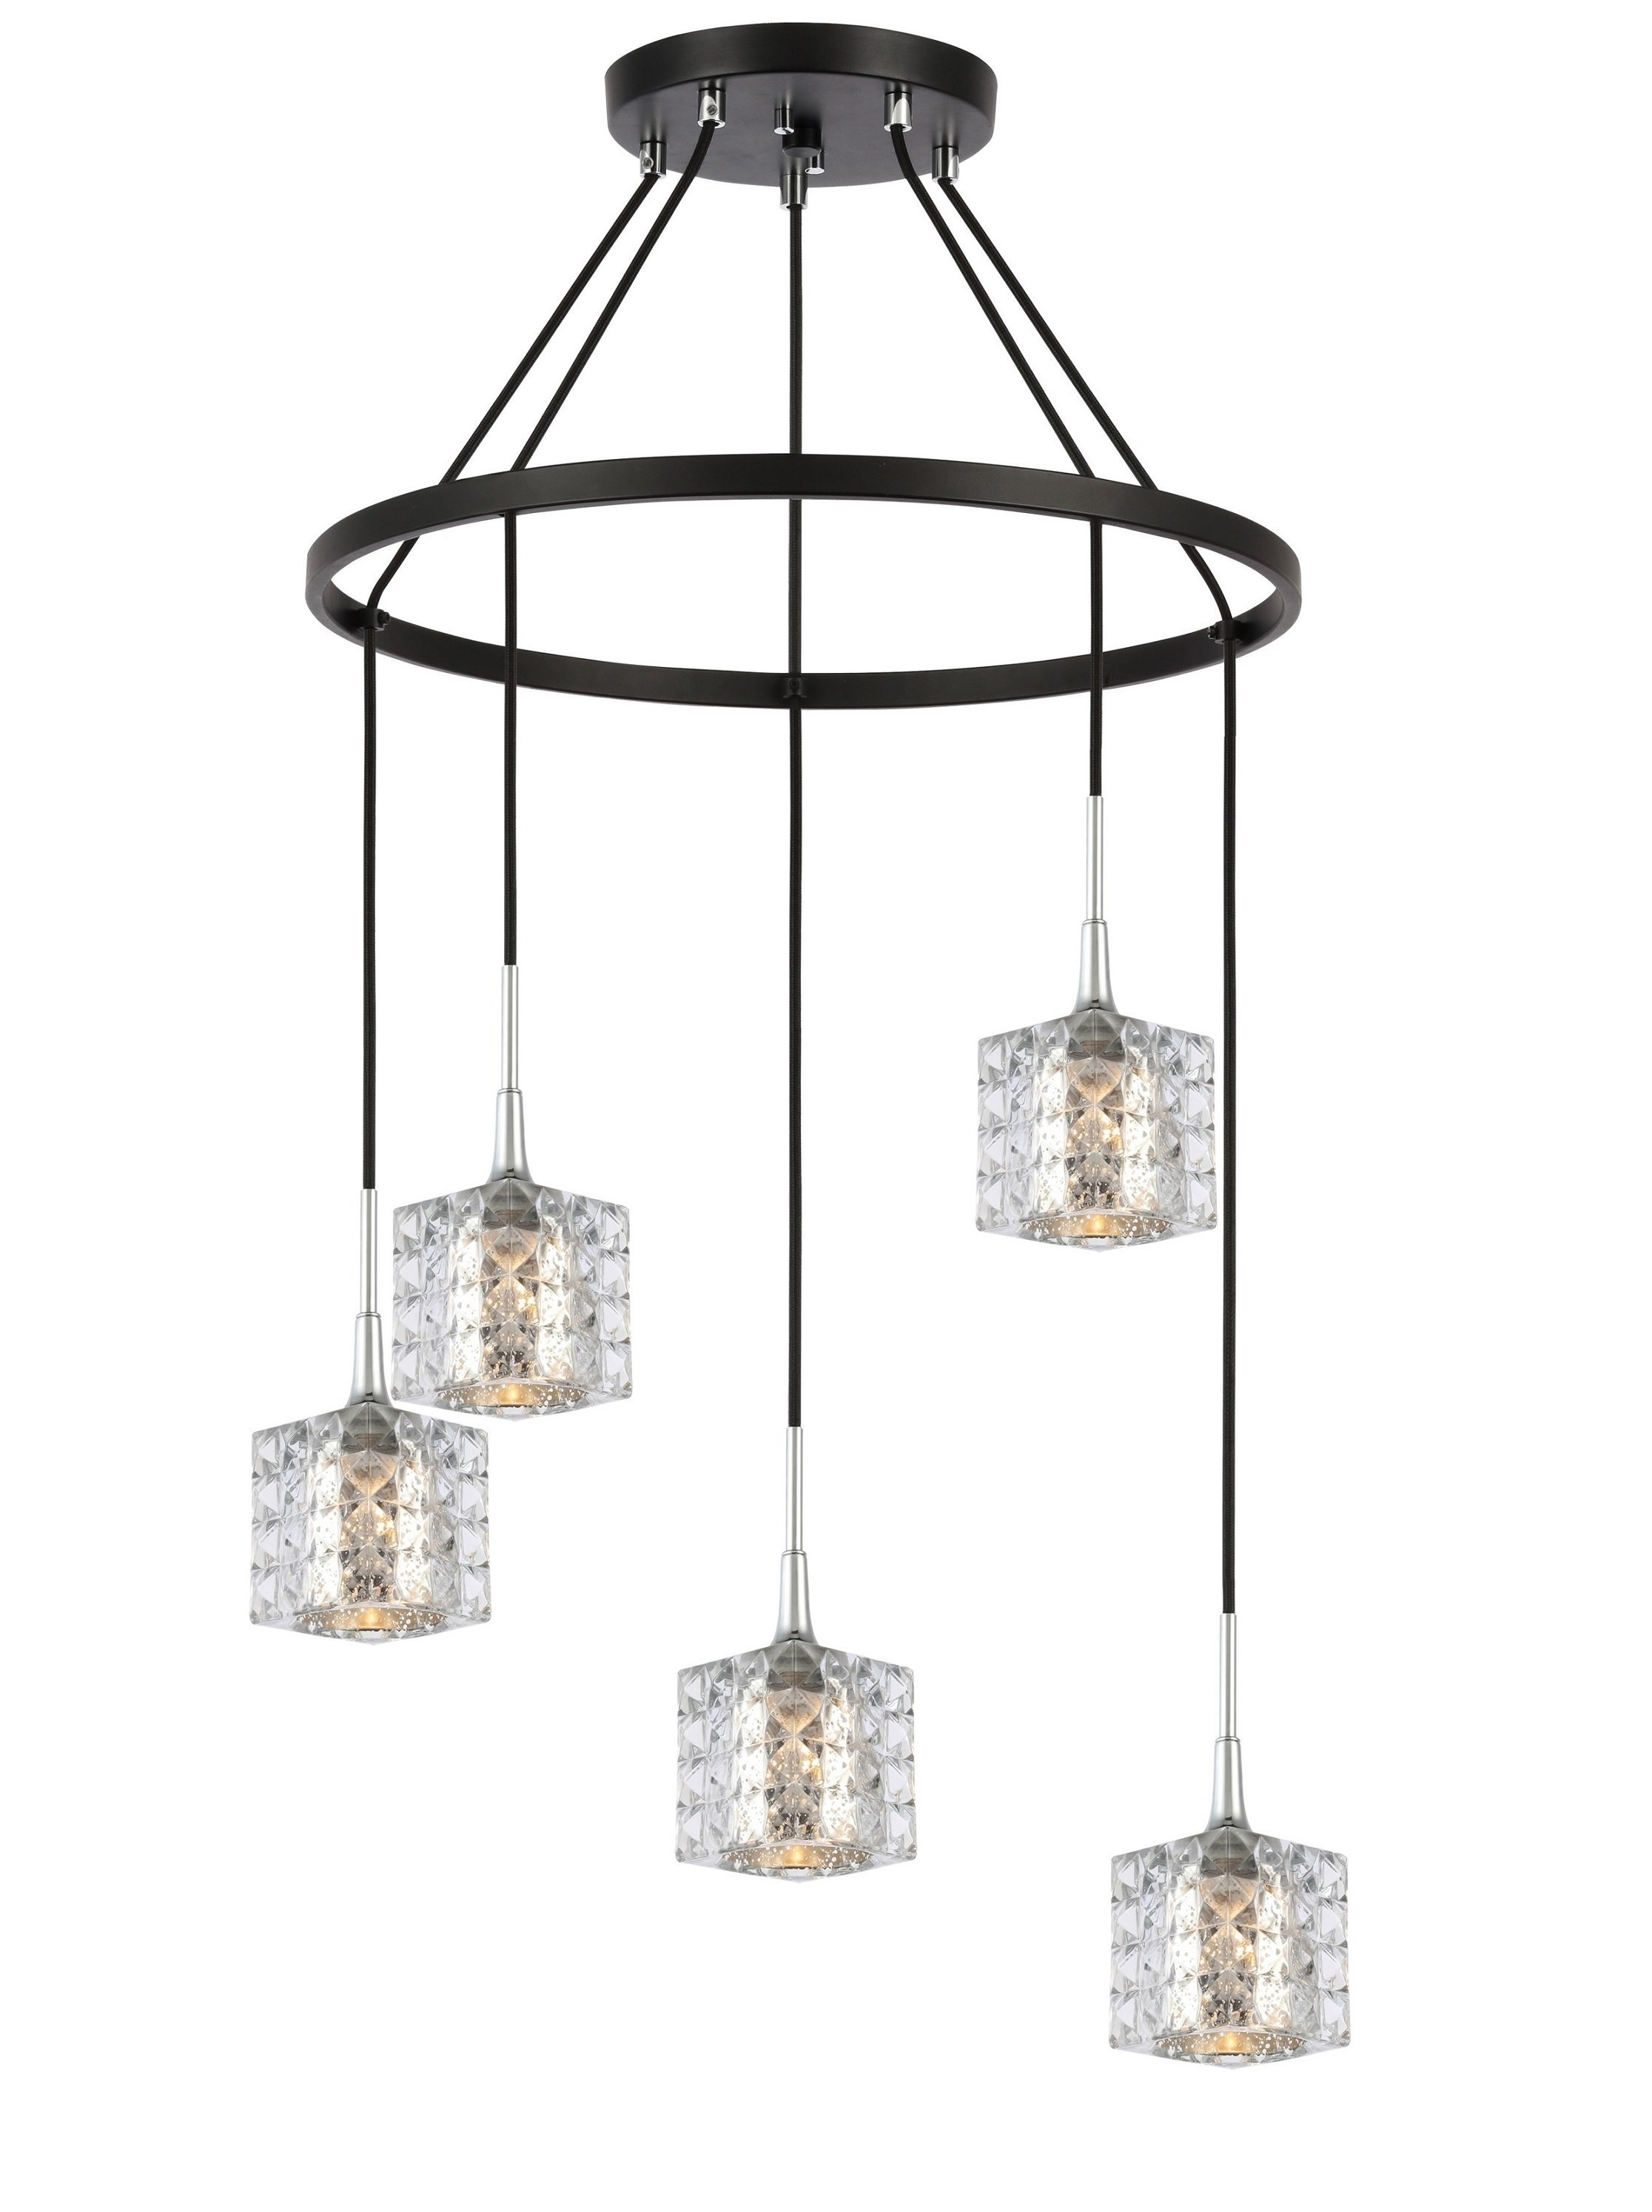 Latest Woodbridge Lighting 20828Chz C80414 Bristol 5 Light Pendant With Regard To Berenice 3 Light Cluster Teardrop Pendants (View 14 of 20)